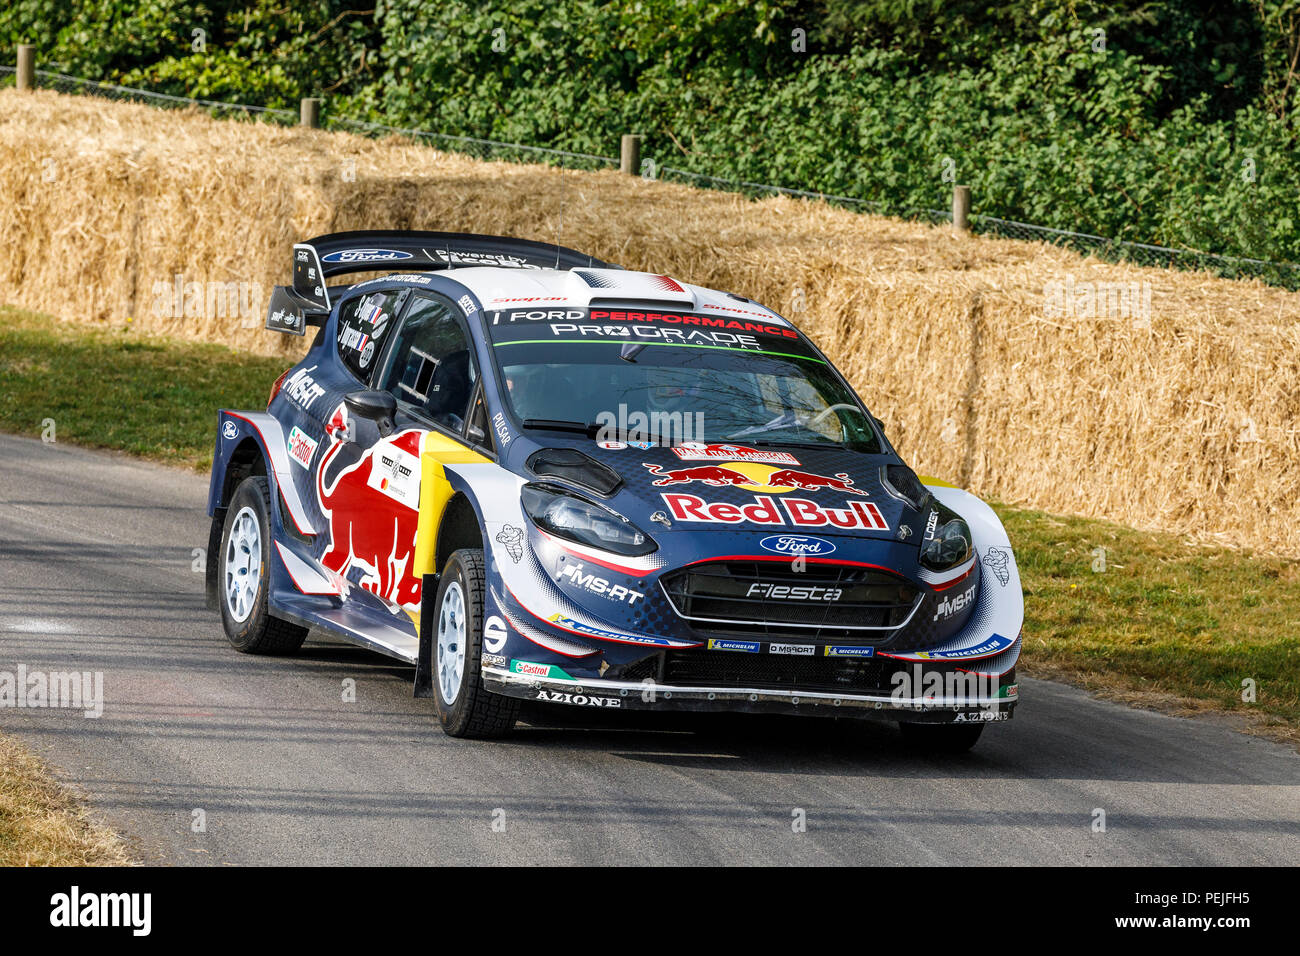 2018 Ford Fiesta Wrc Rally Car With Driver Sebastien Ogier At The